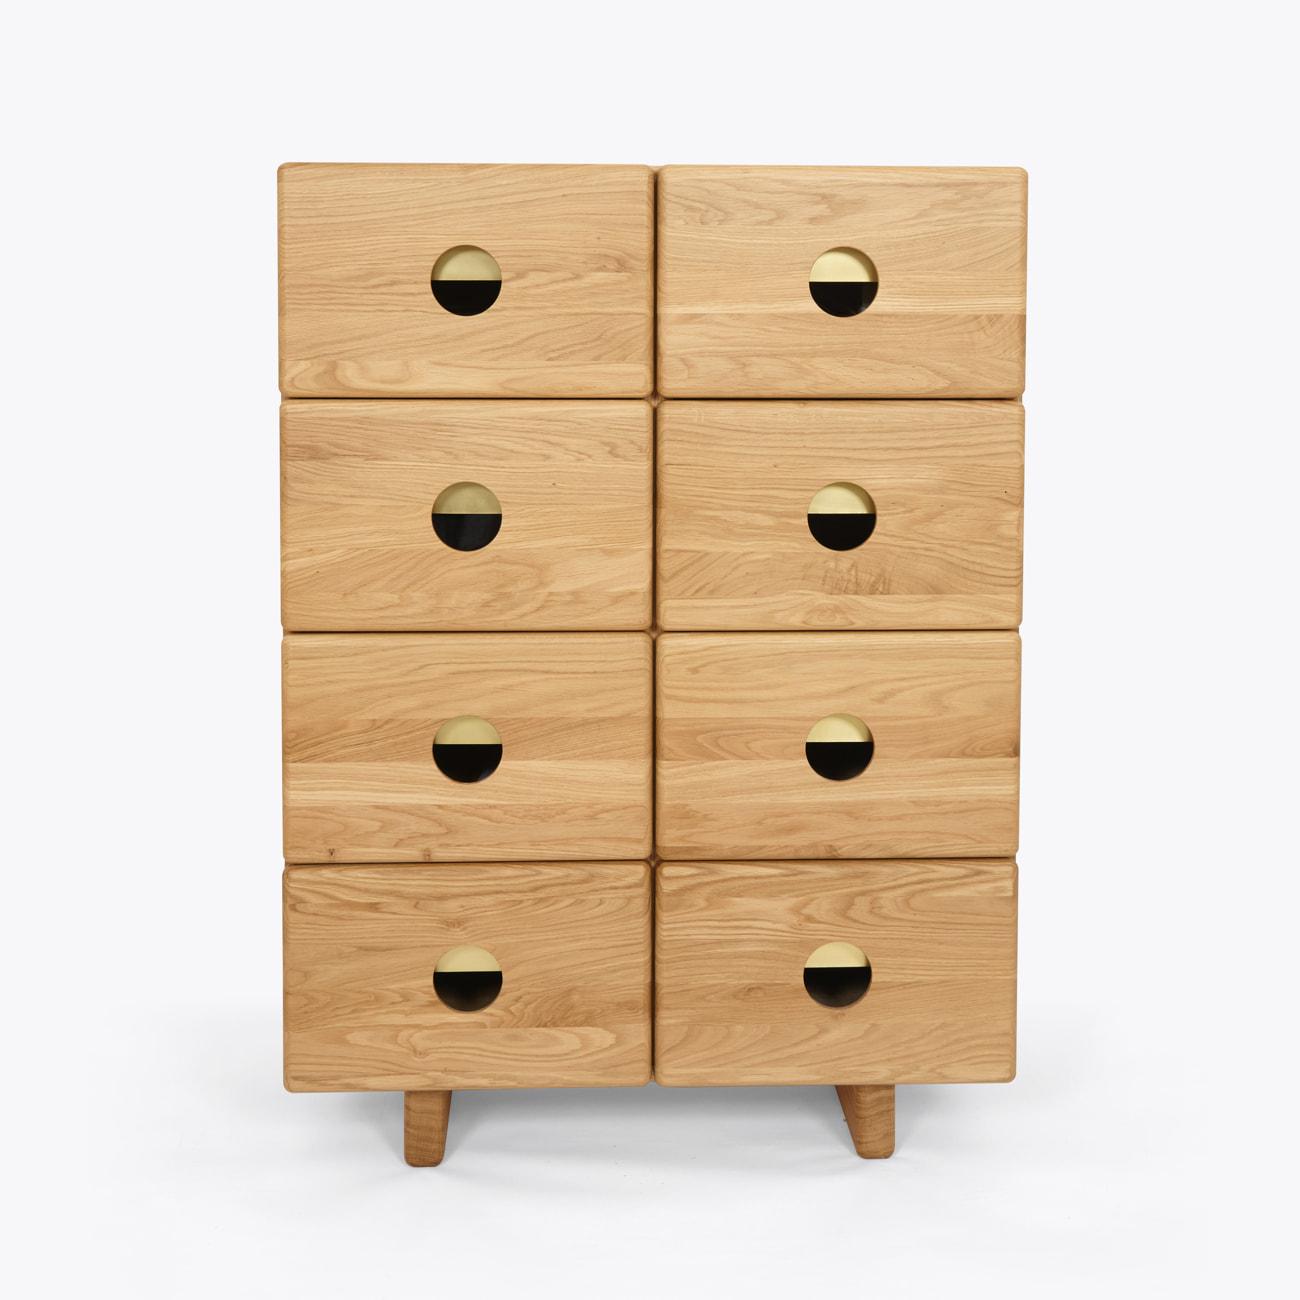 furniture-archive-brass-sideboard-the-hansen-family-7